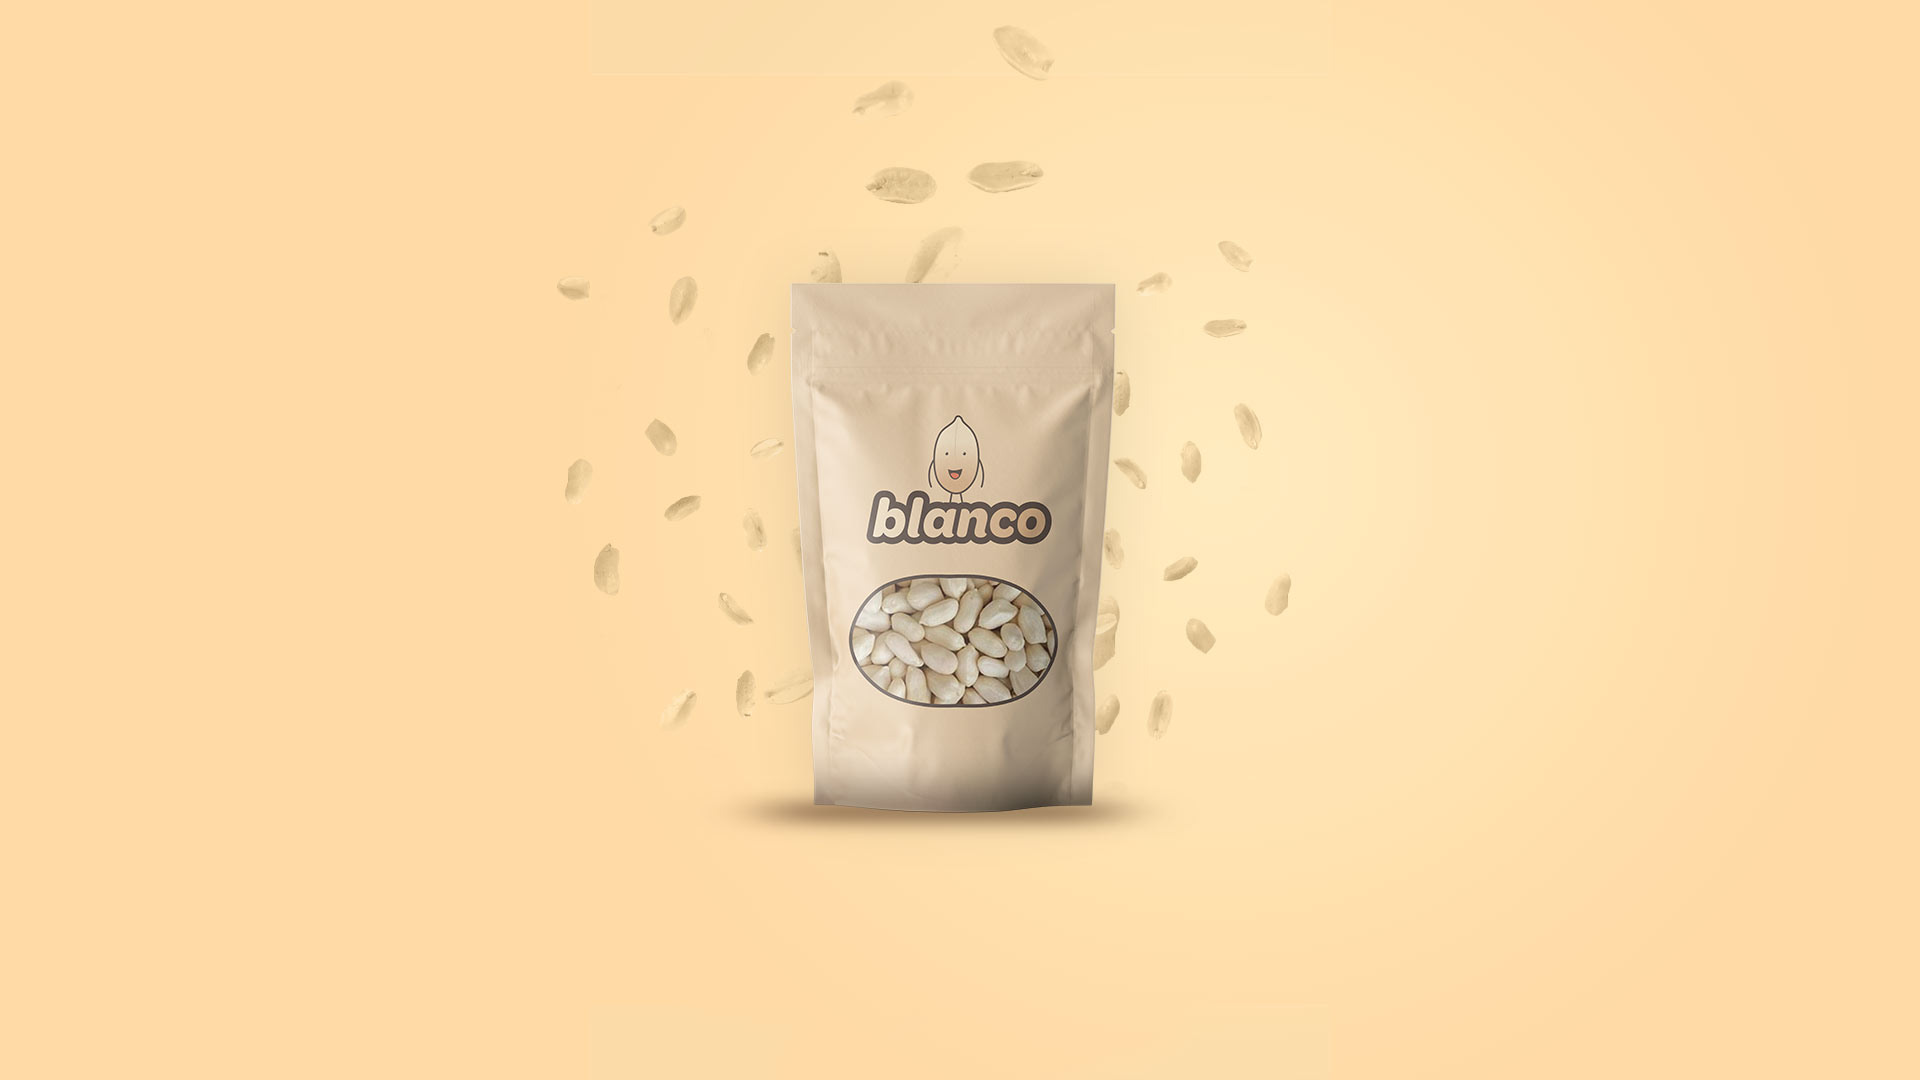 blanco blanched peanut package design